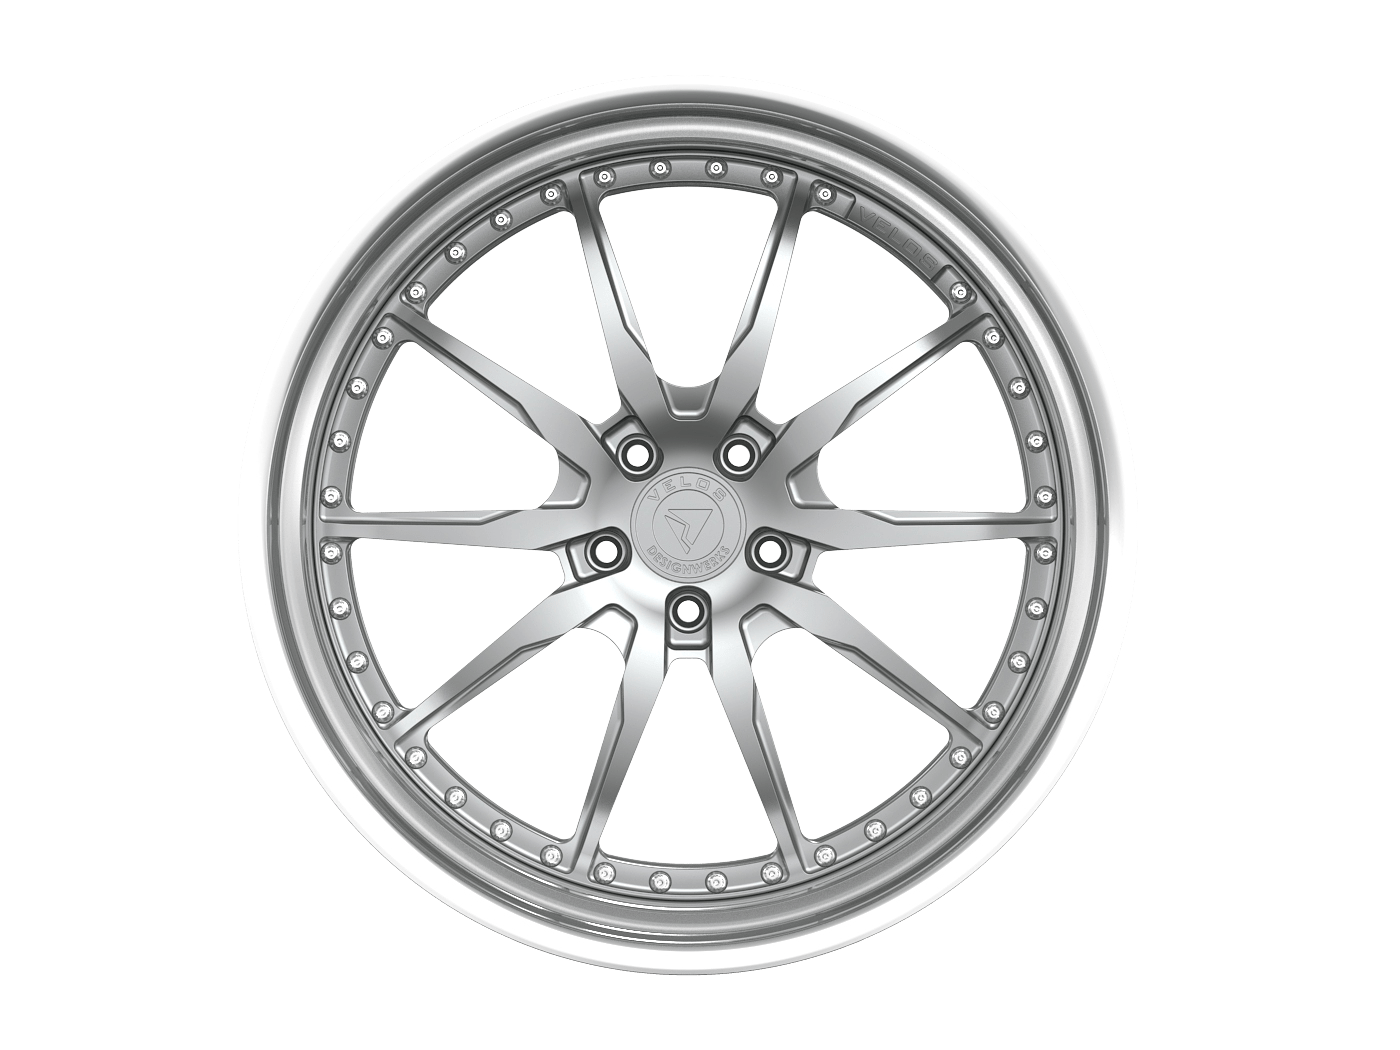 S10 Signature Series Forged Wheels